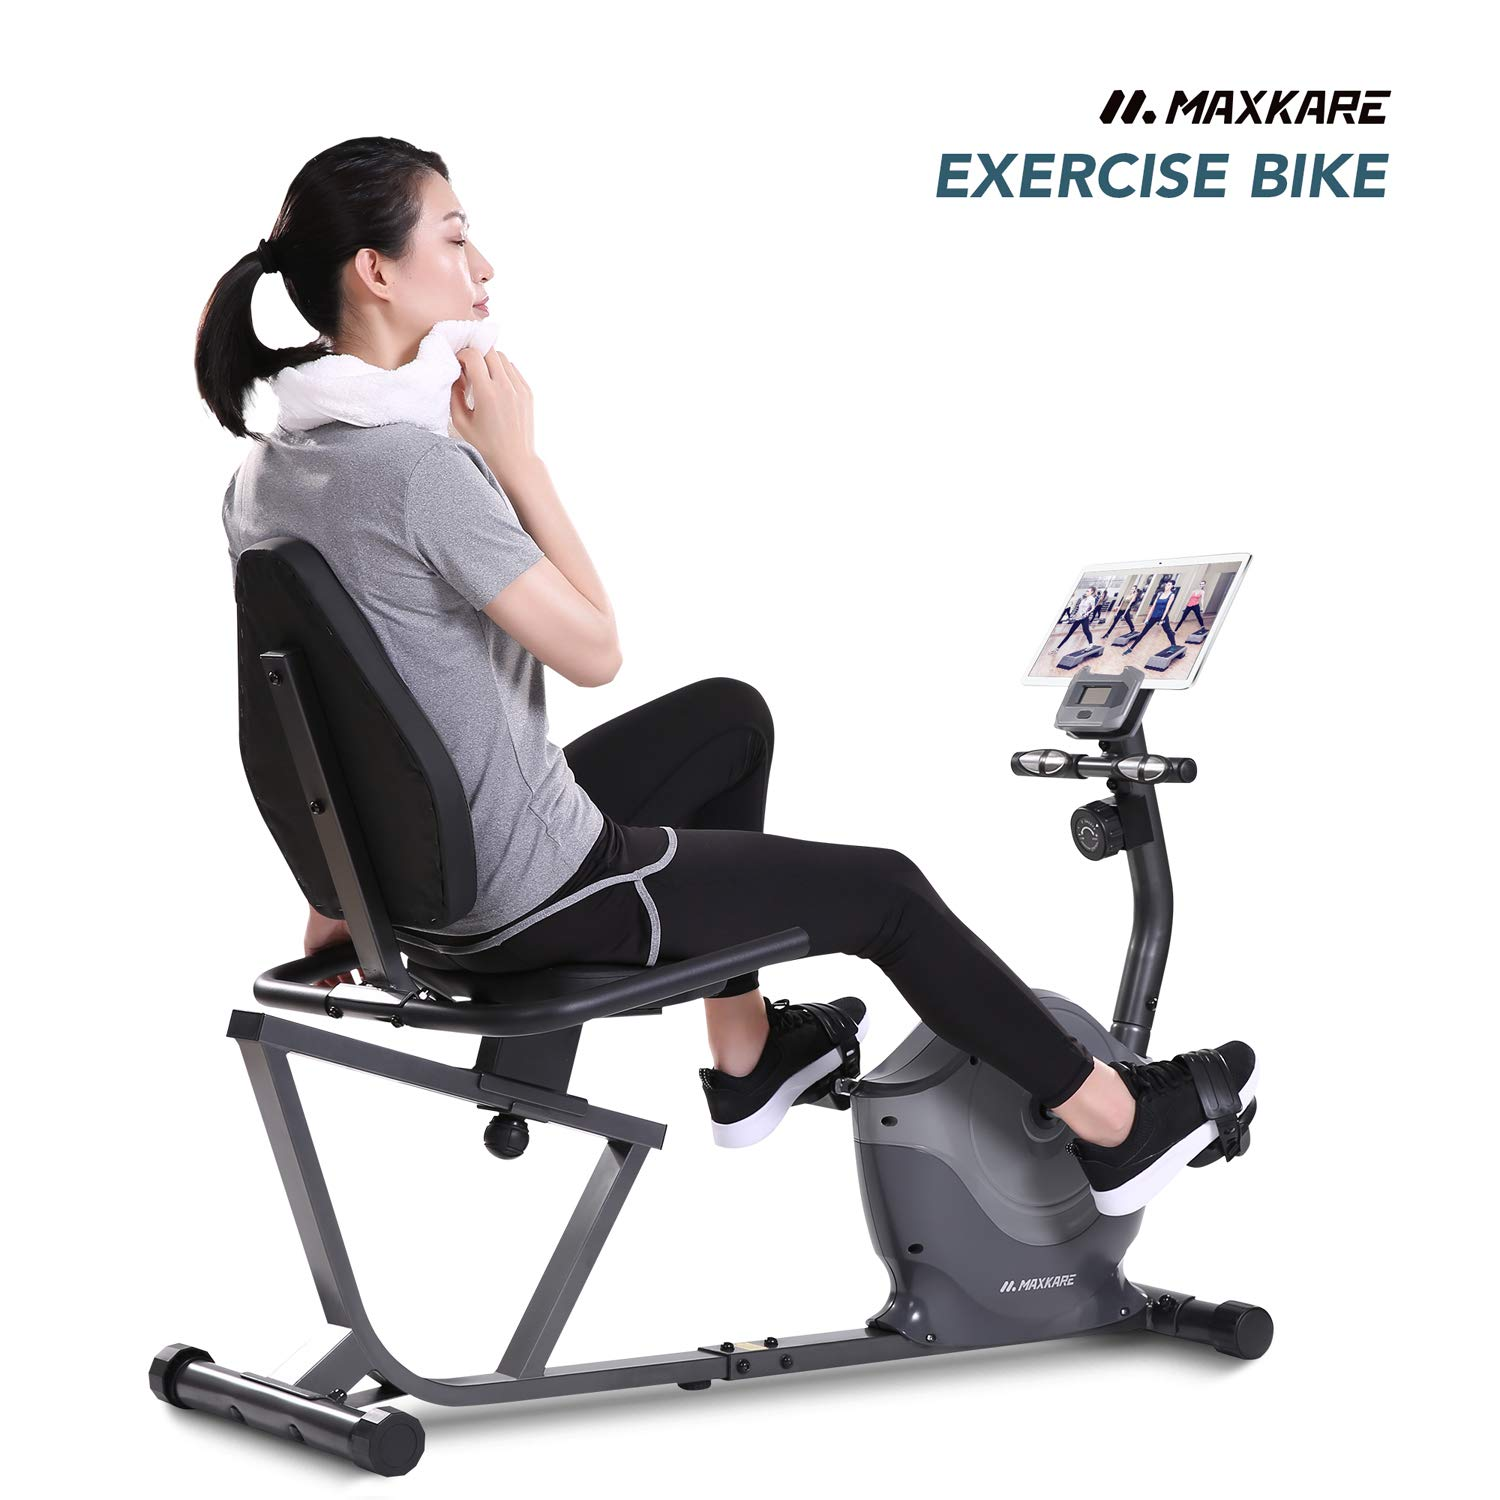 MaxKare Recumbent Exercise Bike Indoor Cycling Stationary Bike with Heart Rate Sensor and Phone Holder Burns Fat Calories